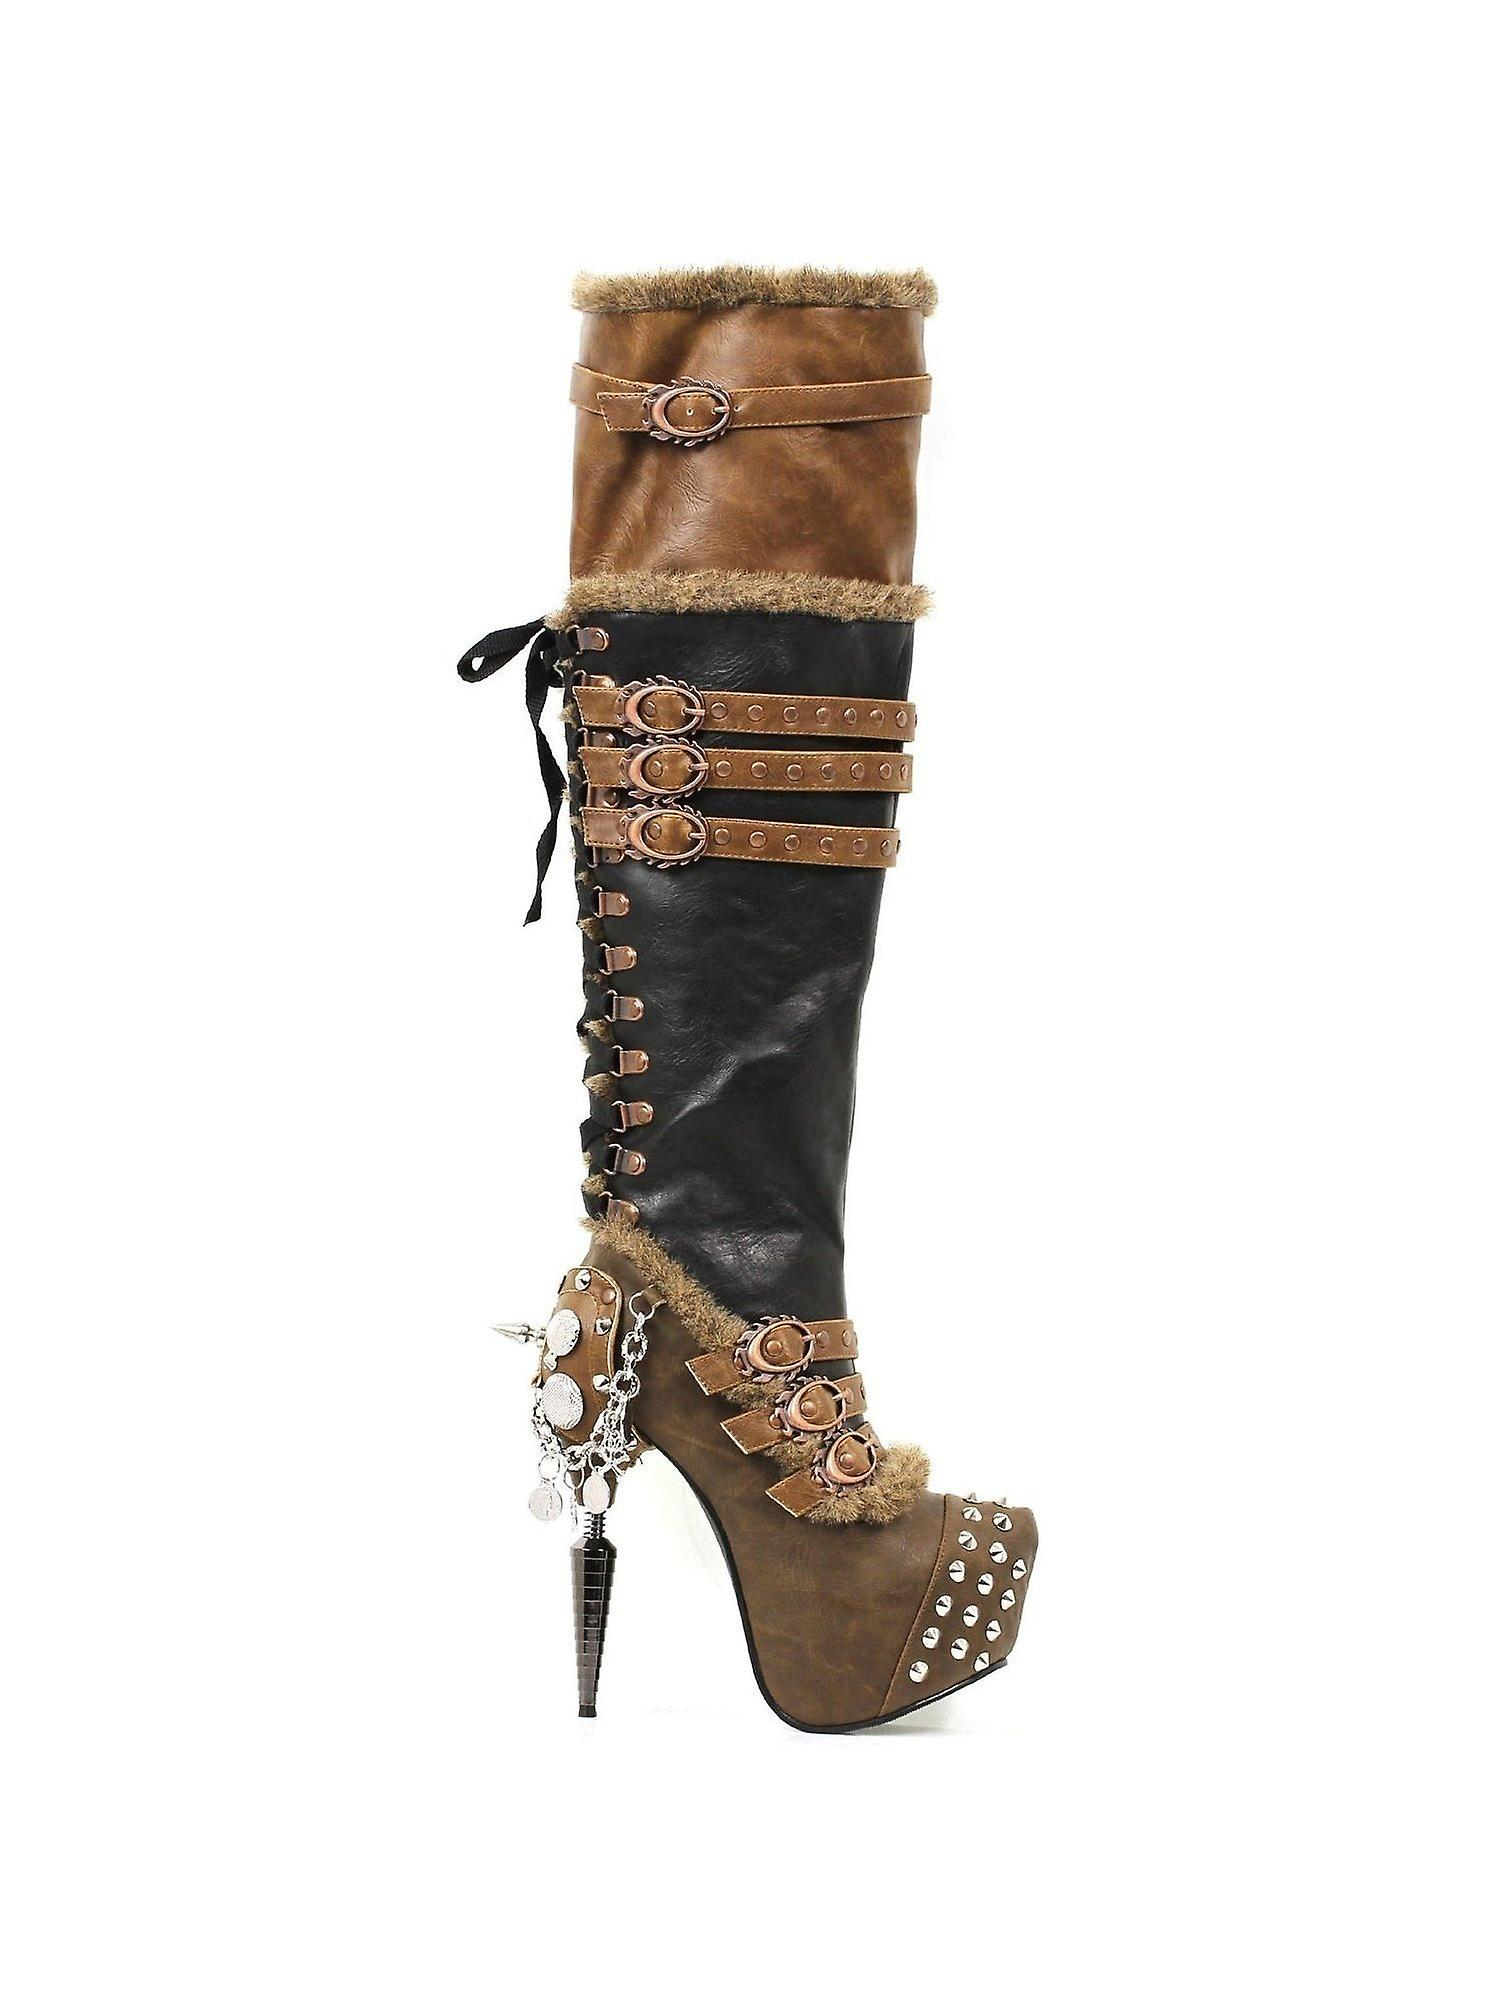 Hades Shoes H-Ventail Thigh High medium sized metal spikes adorn the front